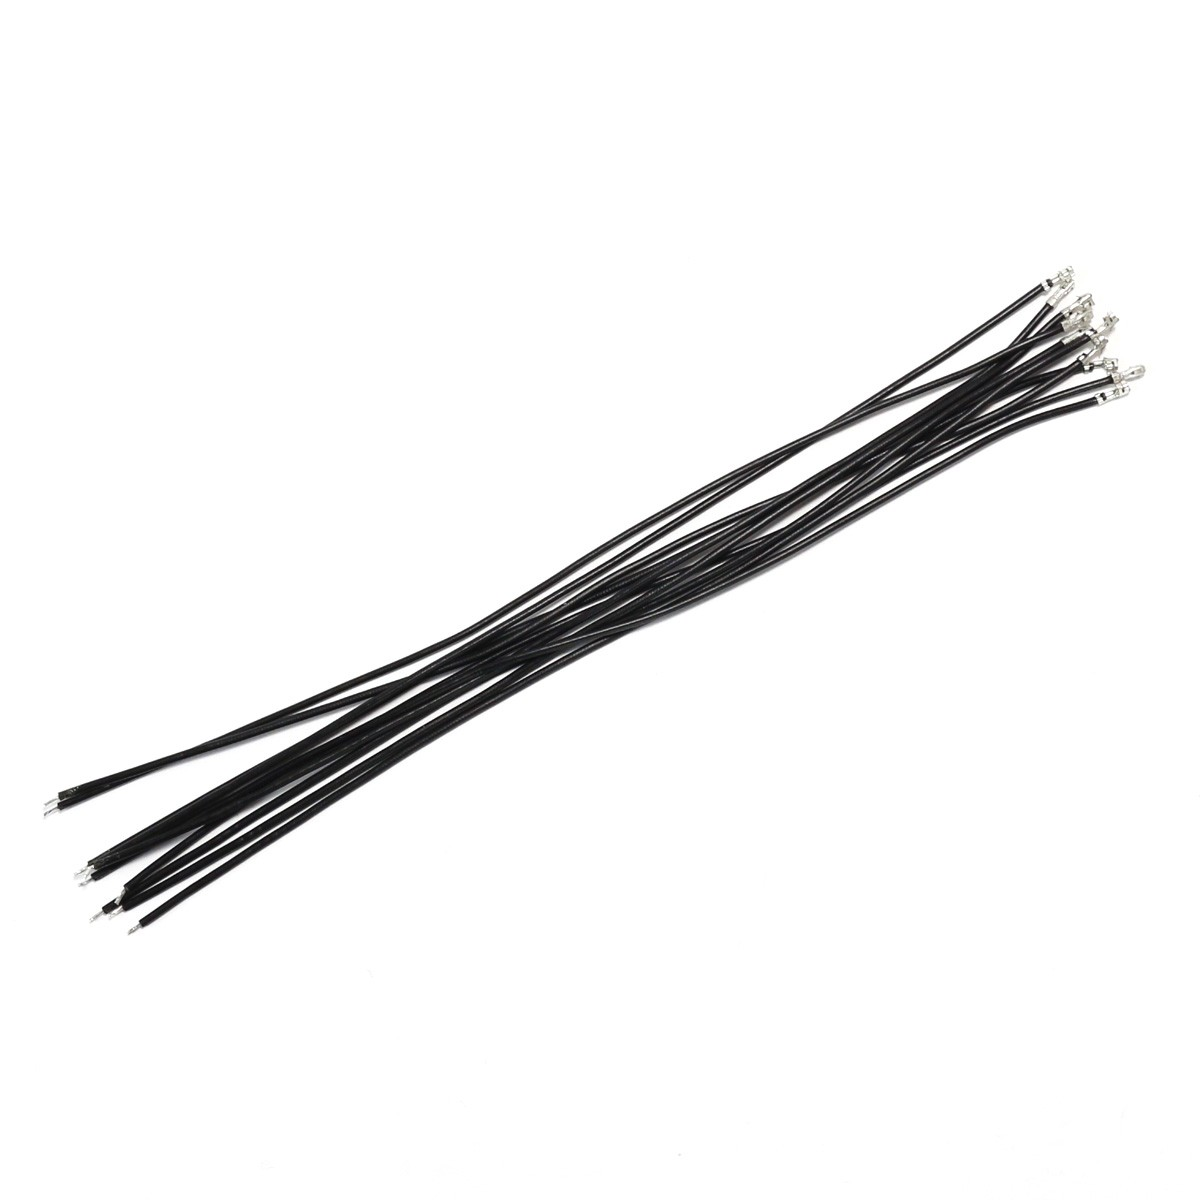 Interconnect Cable for XH to Bare Wire 2.54mm 1 Pin 20cm Black (x10)